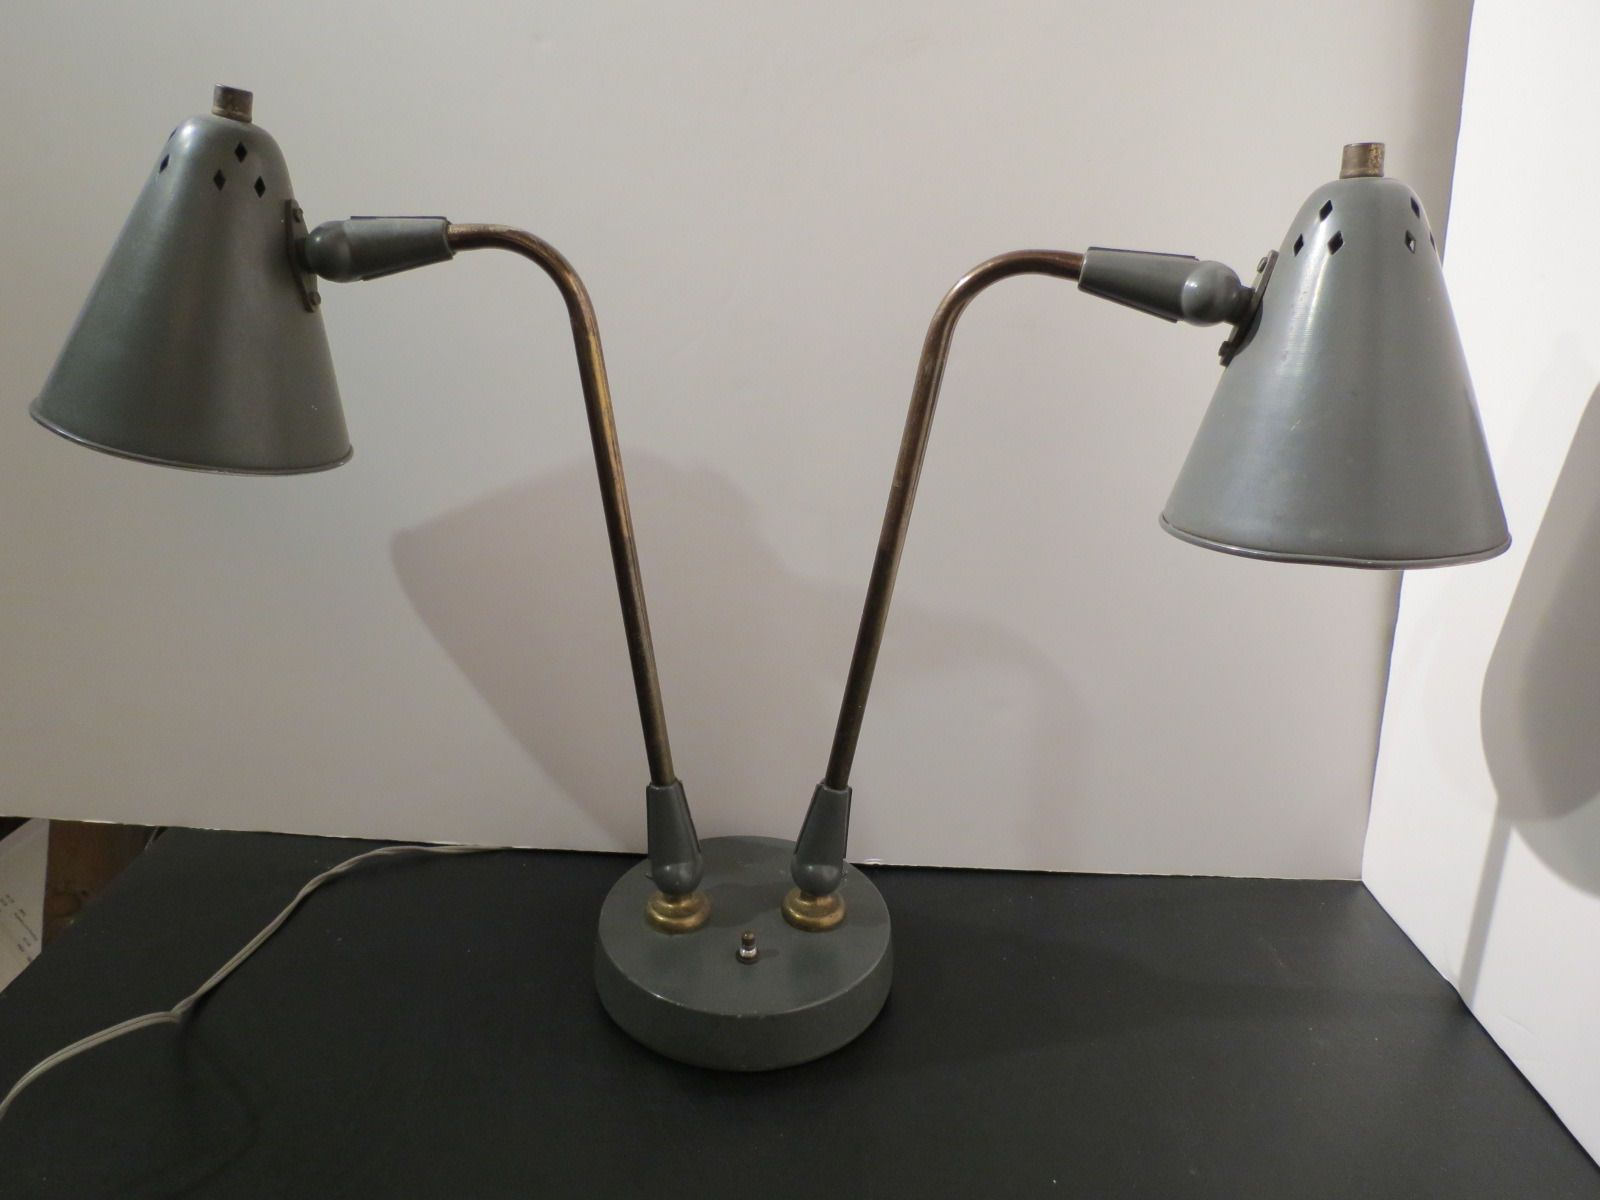 Vintage modern gerald thurston for lightolier double articulating vintage modern gerald thurston for lightolier double articulating task desk lamp ebay geotapseo Image collections